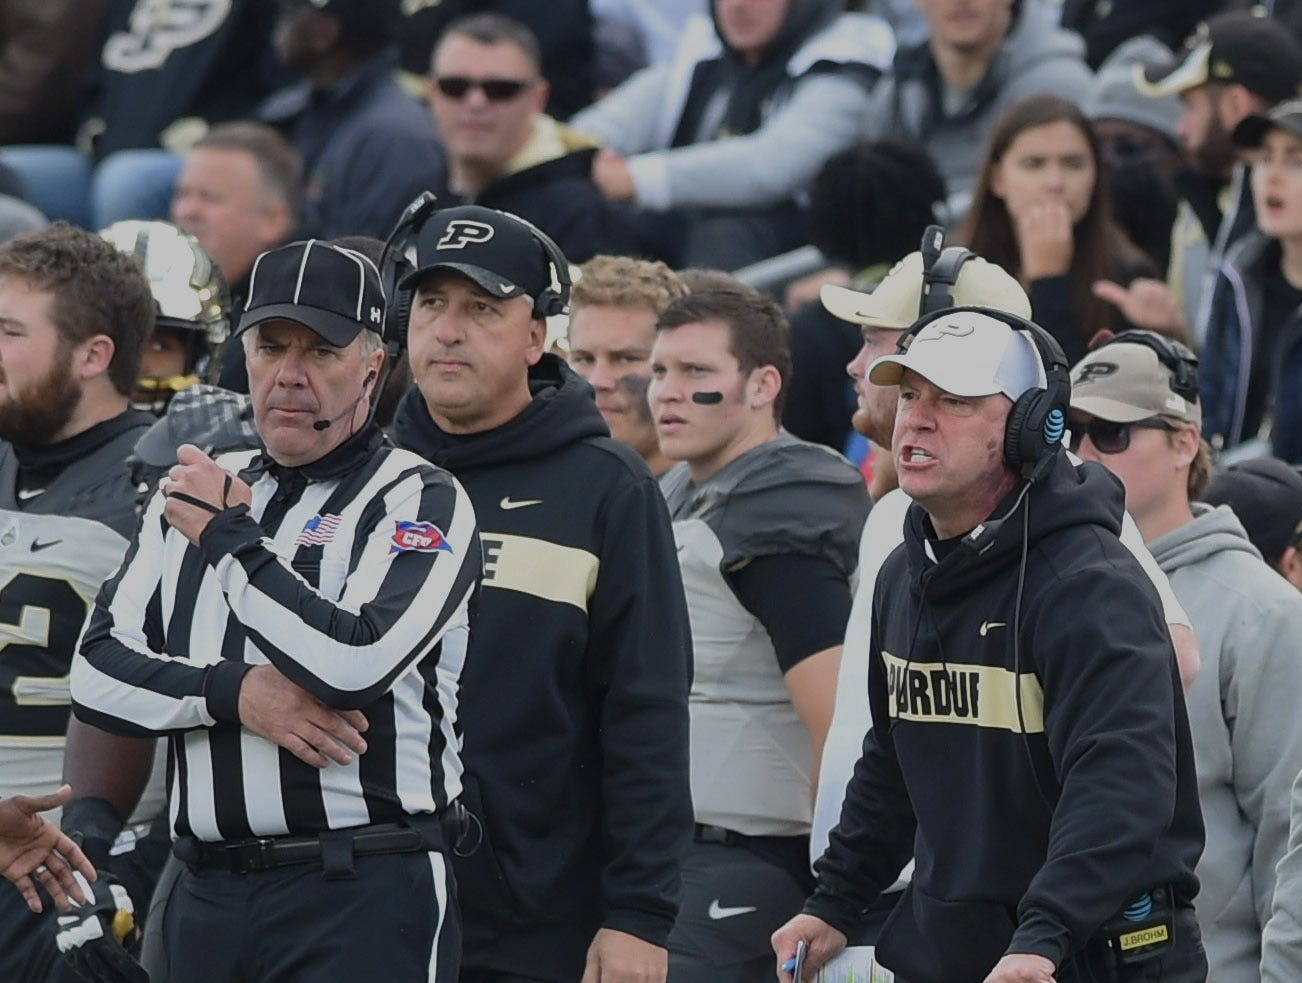 Fans had a picture perfect football afternoon Saturday as the Boilers defeated the Iowa Hawkeyes. Jeff Brohm